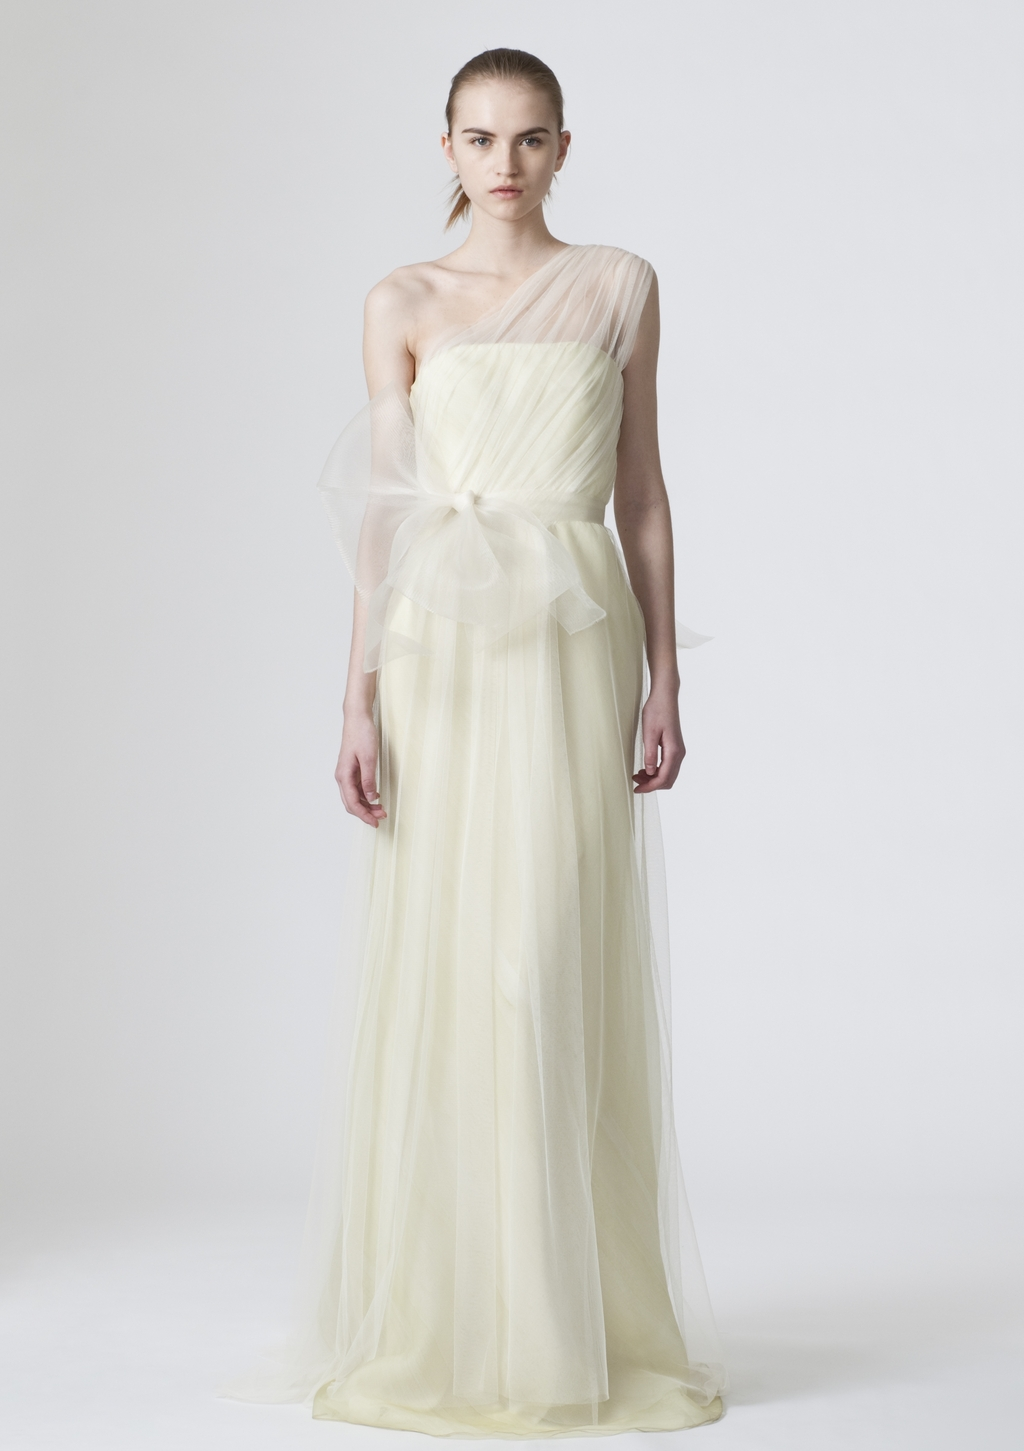 Vera-wang-wedding-dresses-spring-2010-4.full